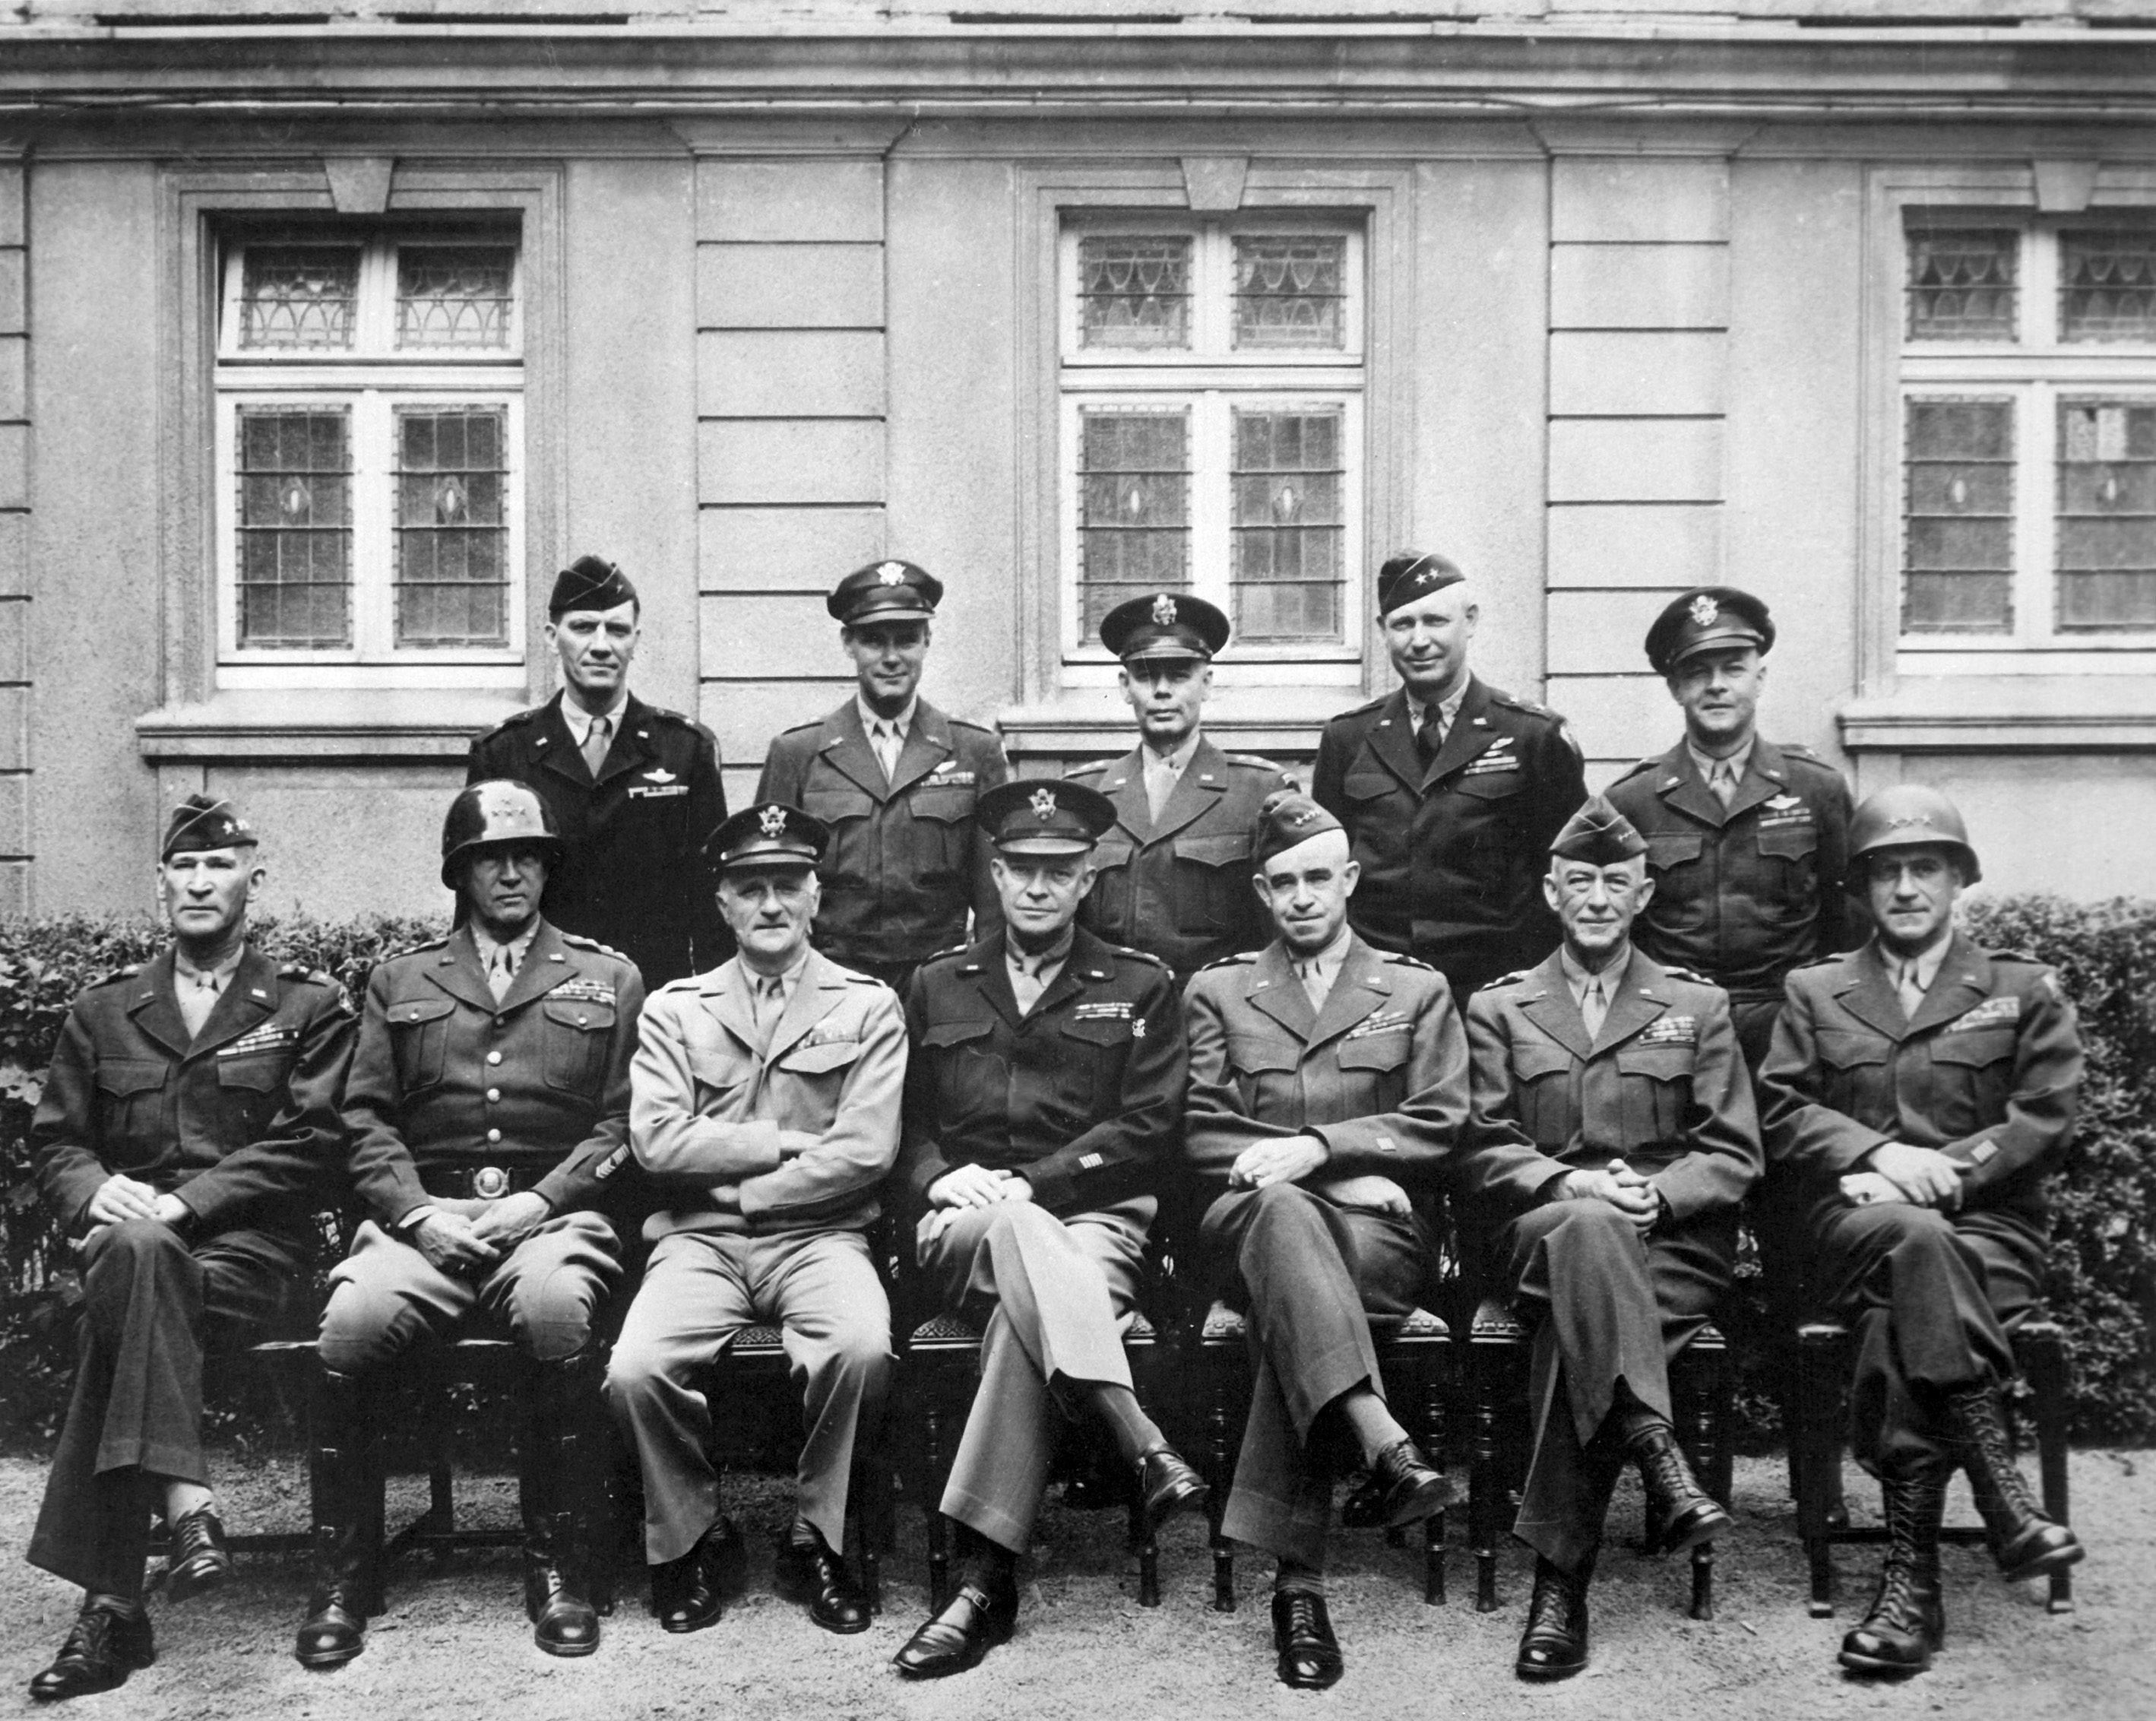 a history of the participants of world war ii A seven-part series brings world war ii to life through the harrowing personal accounts of soldiers and others from typical american towns this documentary brings the harrowing history of.